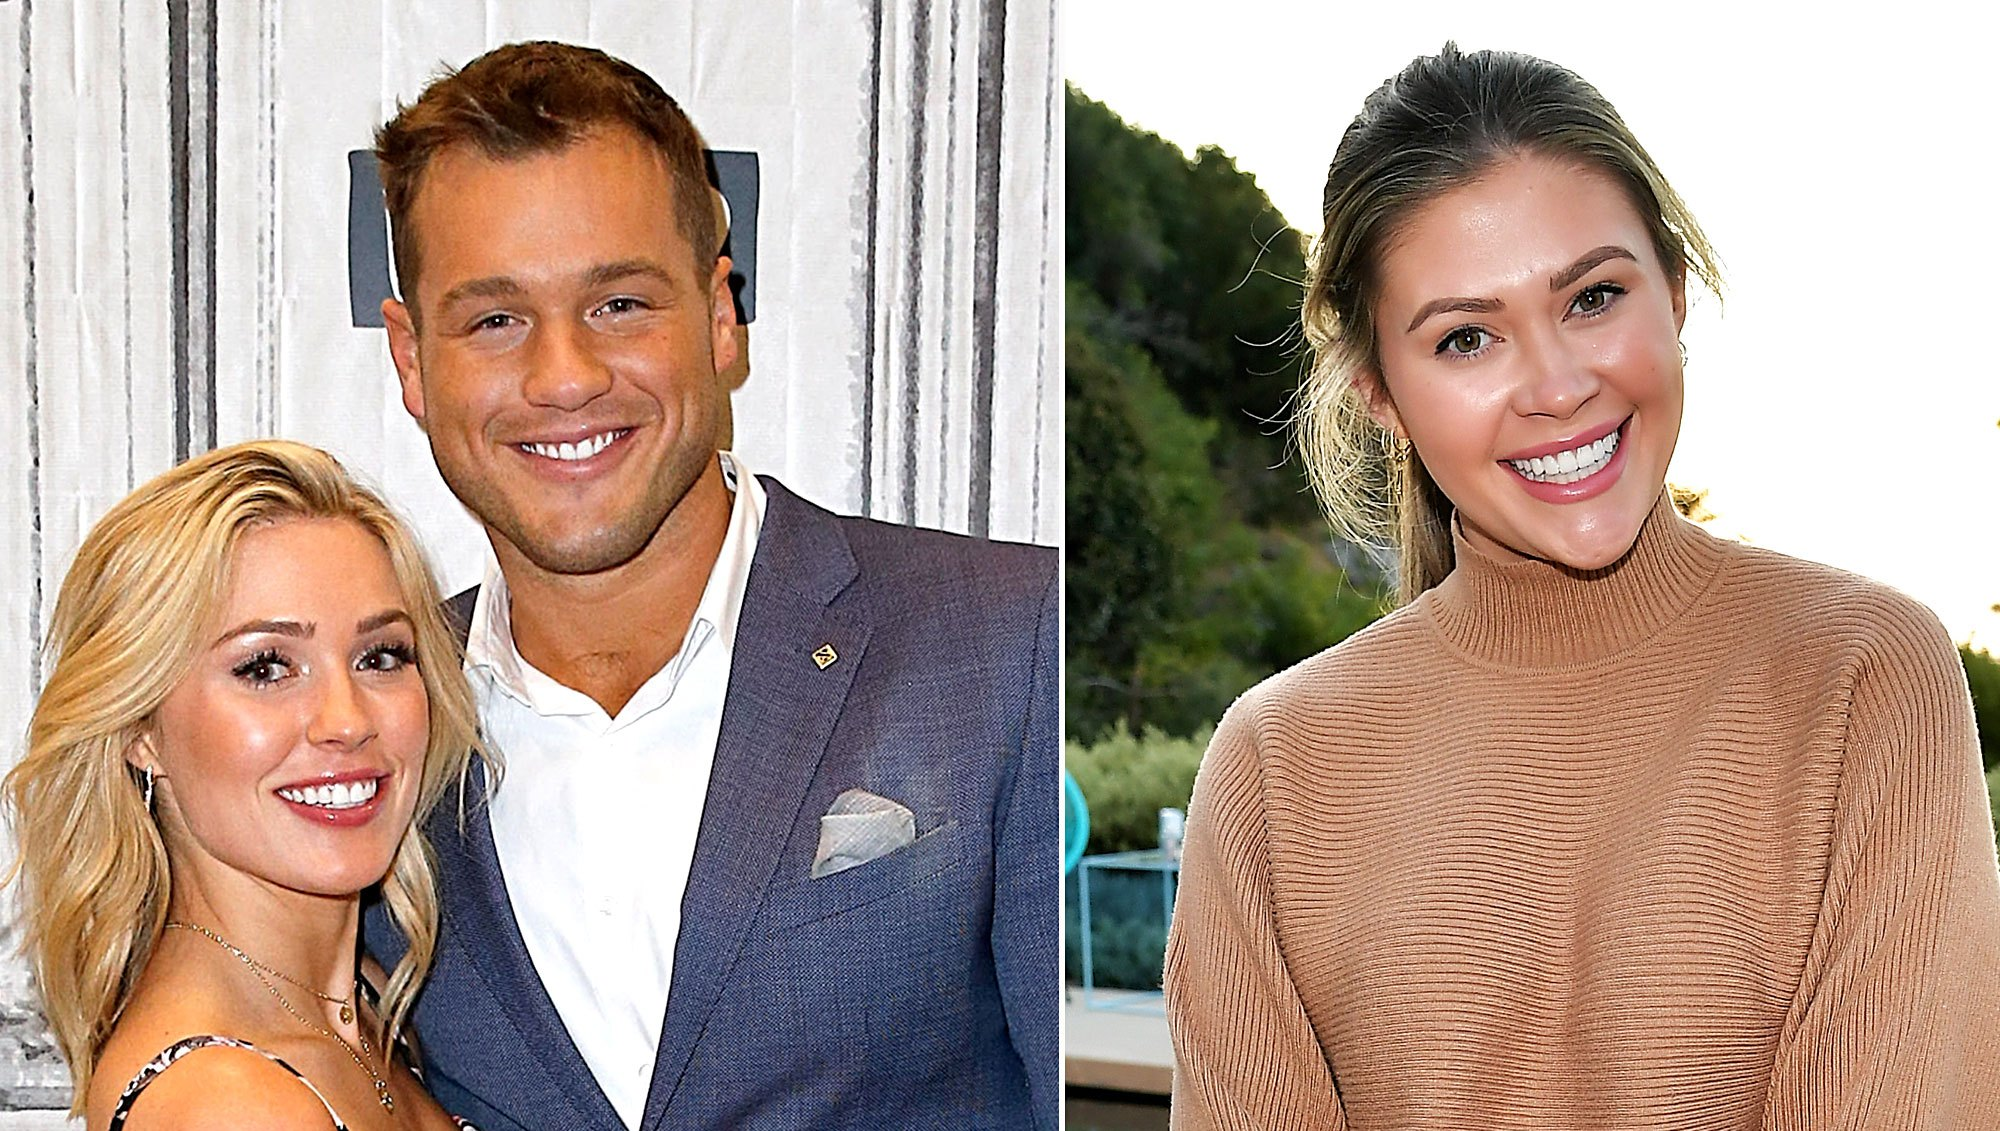 Colton Underwood's Ex Caelynn Works Out With Him and Girlfriend Cassie